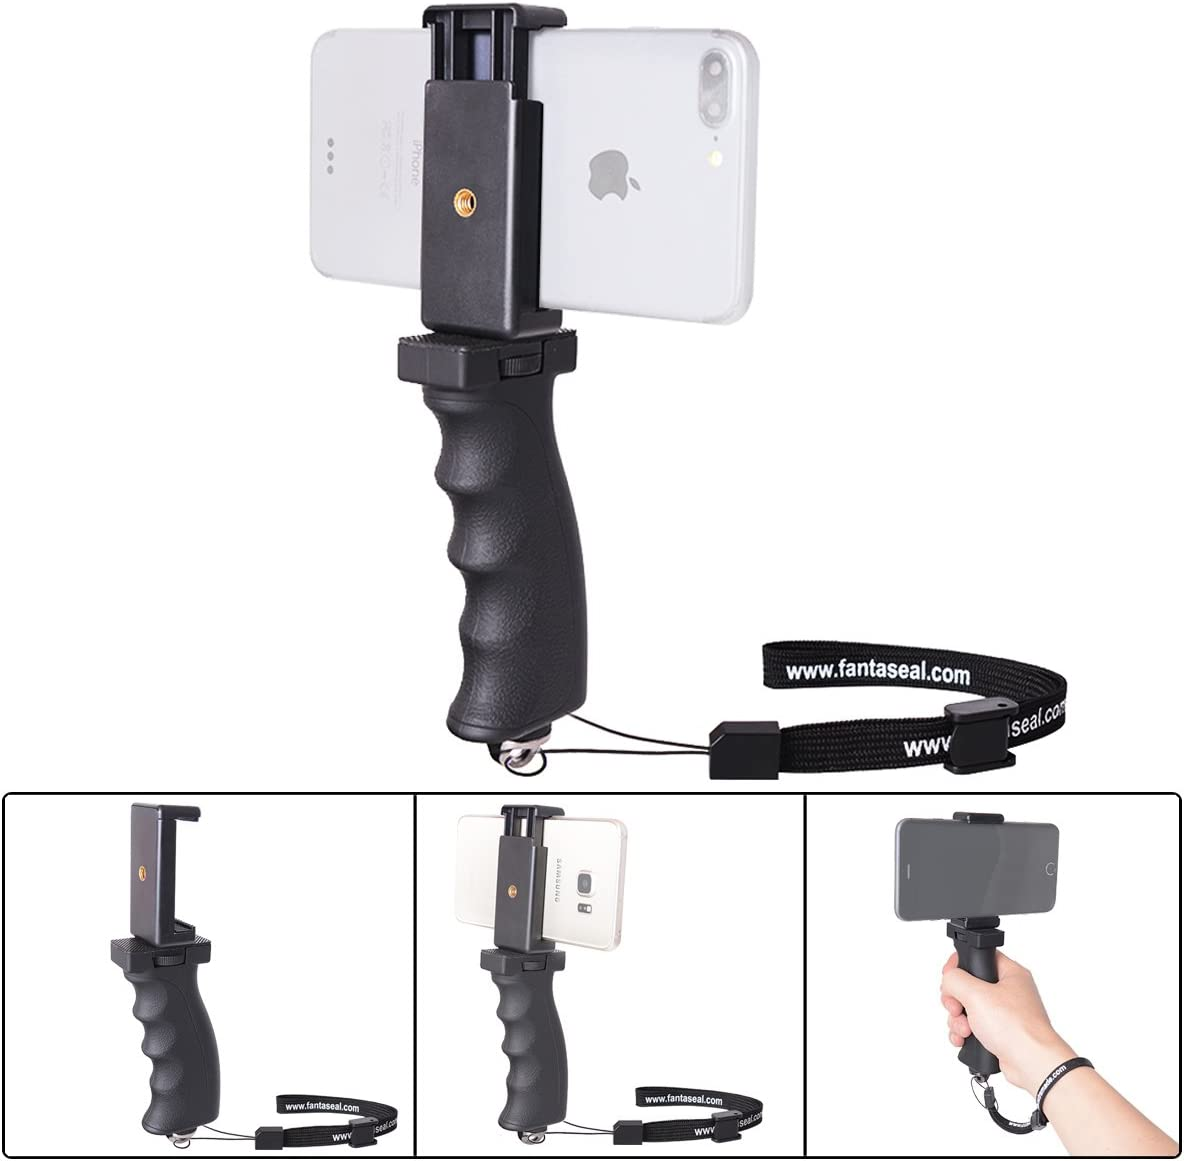 Fantaseal Ergonomic Cell Phone Smartphone Holder, Phone Selfie Stick Hand Grip Stabilizer Handheld Mount Phone Handle Support Steadycam Compatible with iPhone Xs X Nexus LG HTC Samsung etc: Camera & Photo